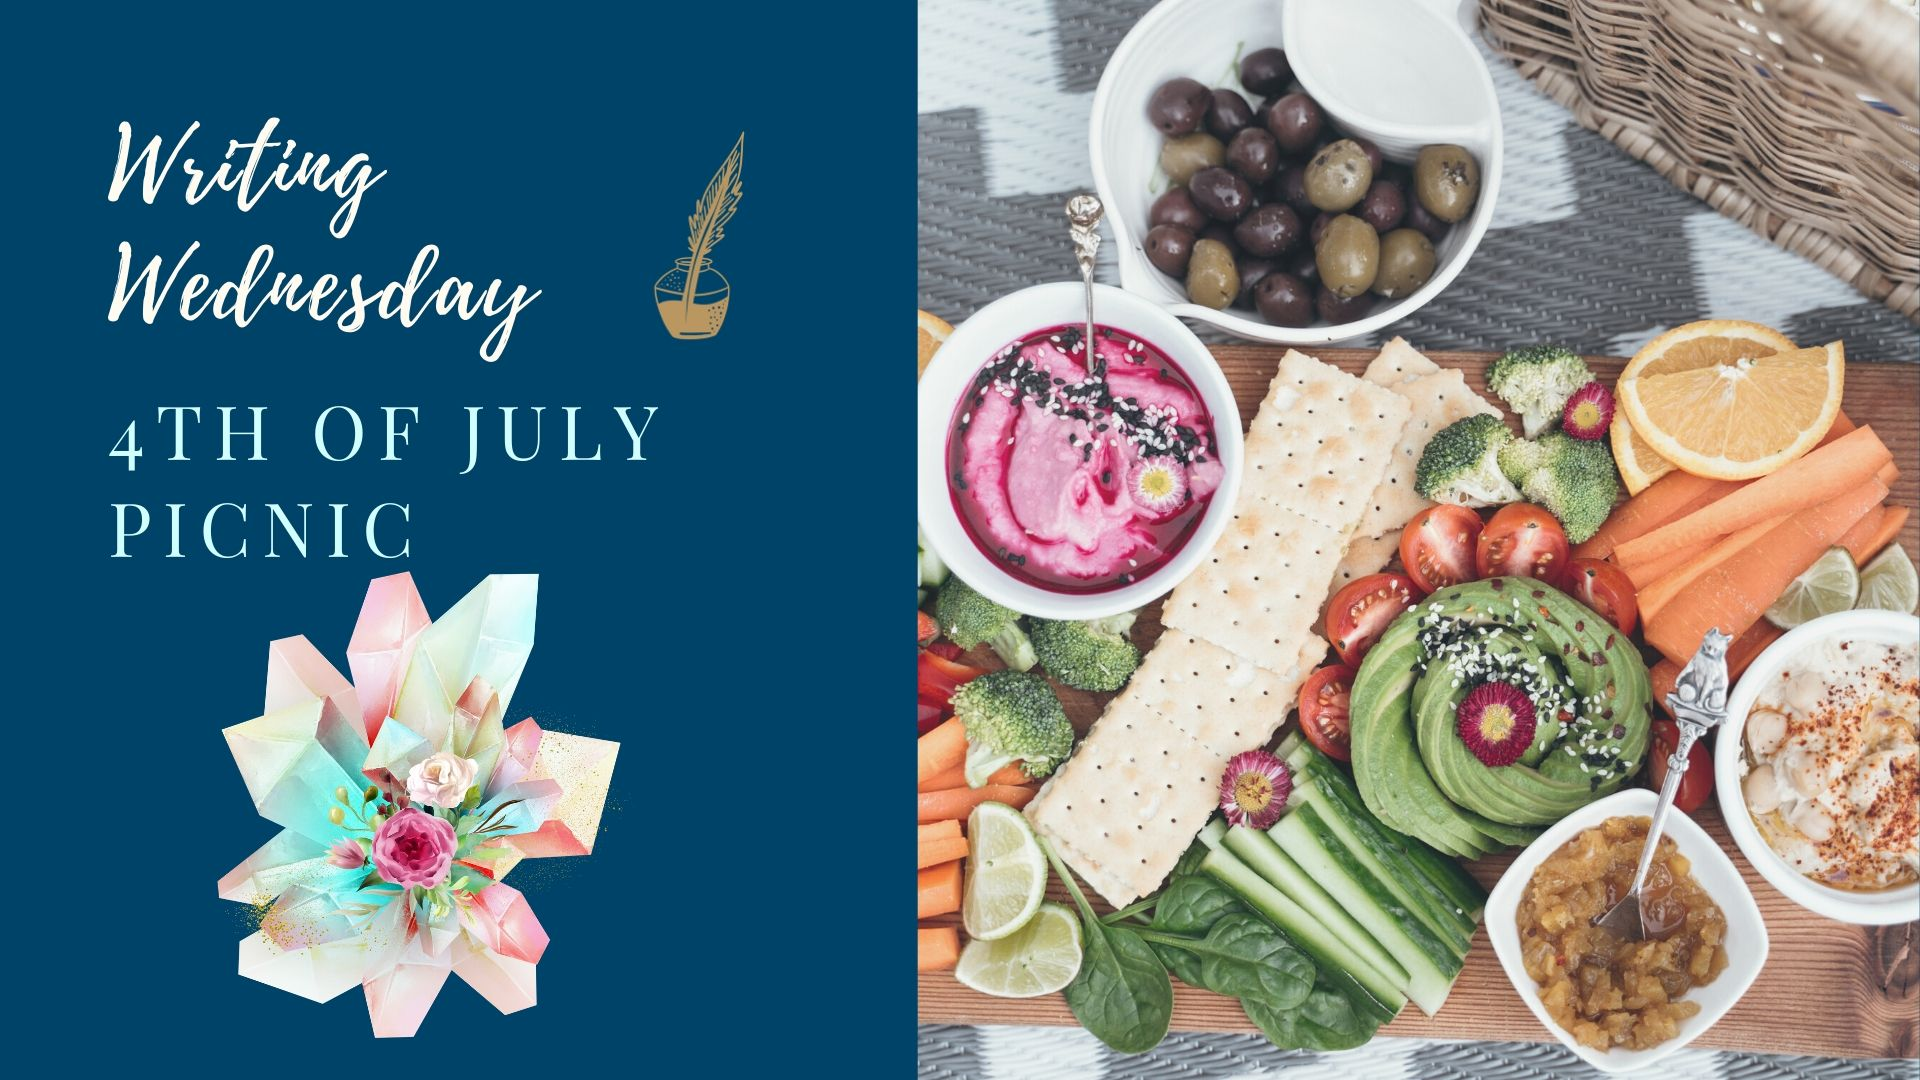 You are currently viewing Writing Wednesday: 4th of July Picnic